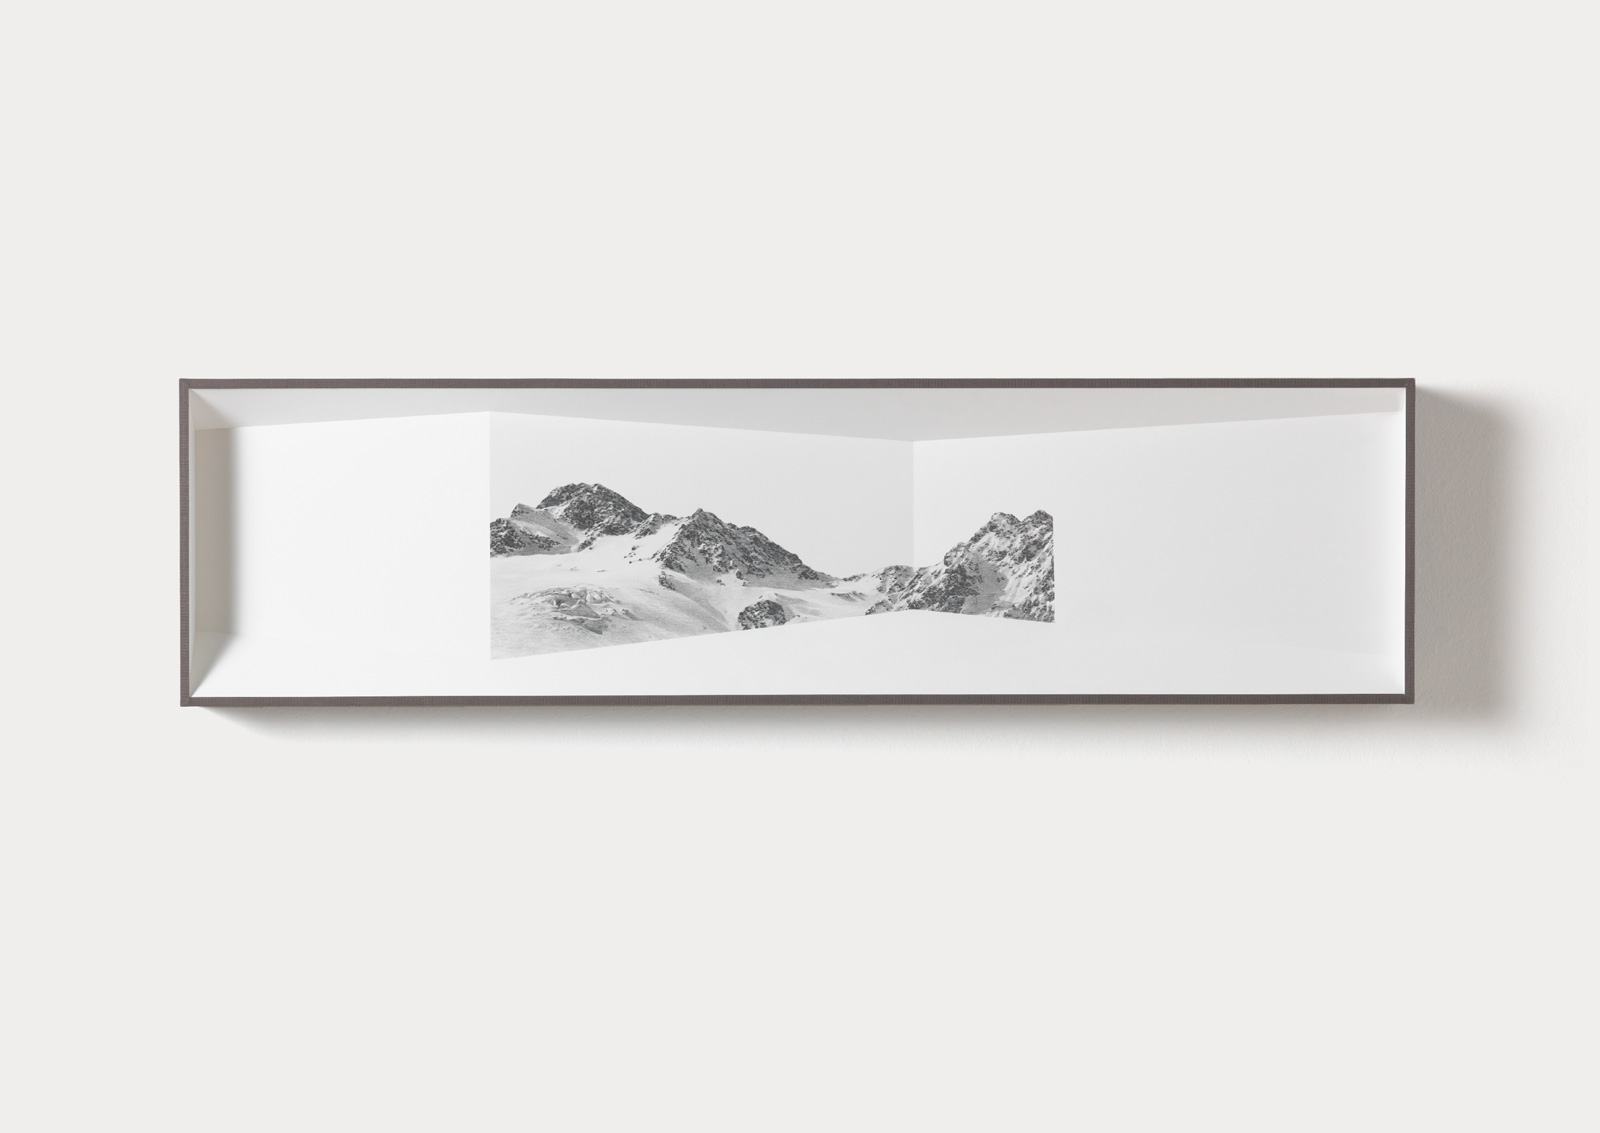 Ausblick 01, 2015 - object with pencil drawing - 24 x 91 x 7 cm